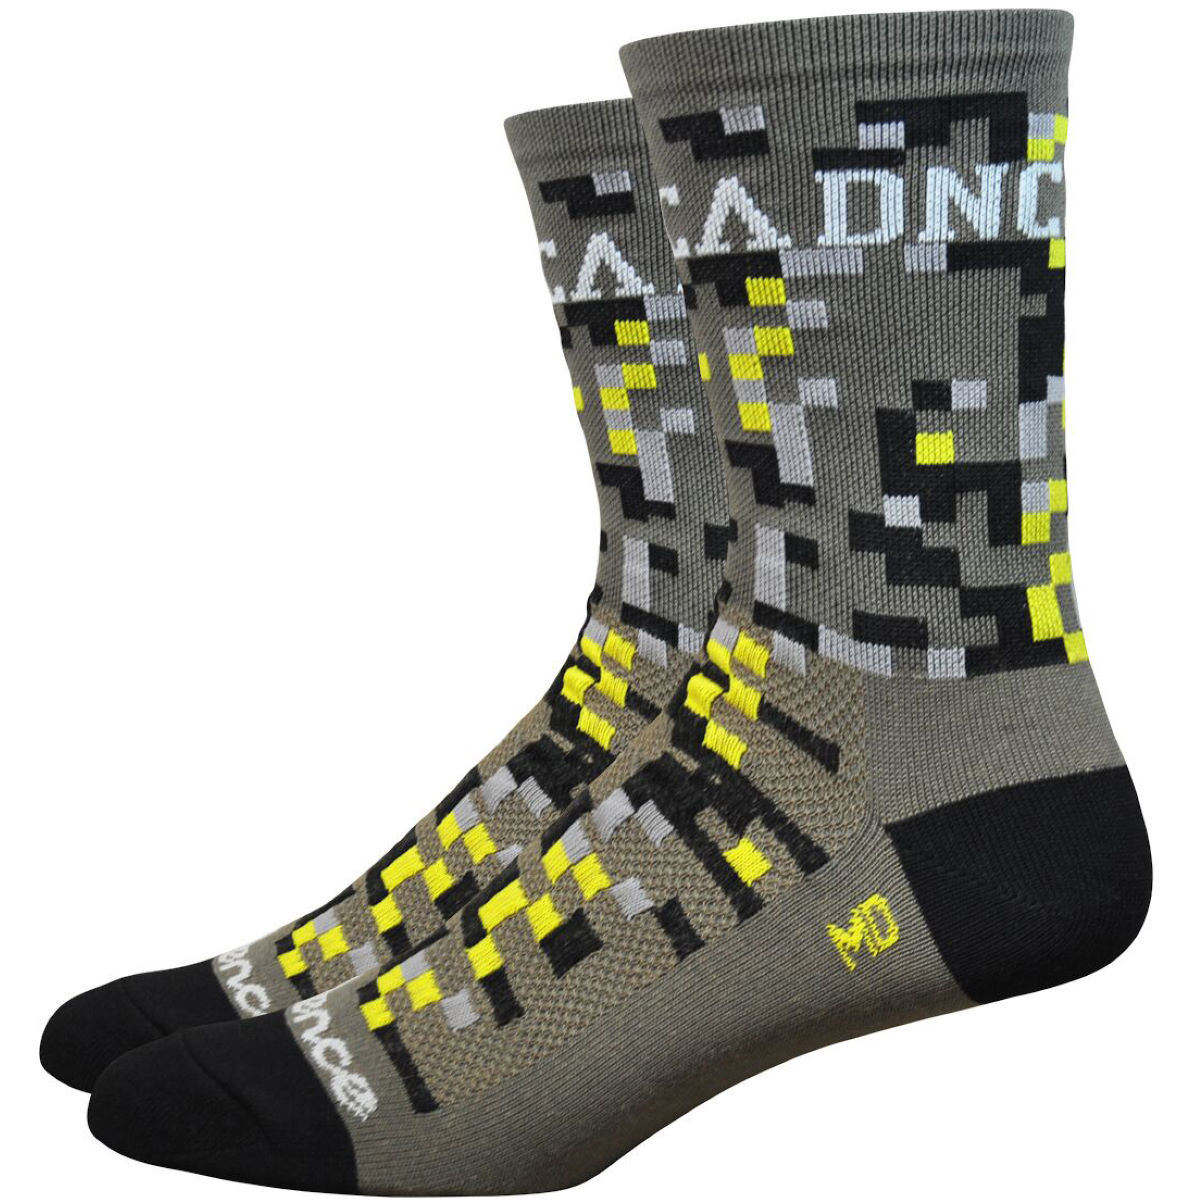 Image of Chaussettes DeFeet Aireator Cadence Digital Camo (13 cm environ) - S